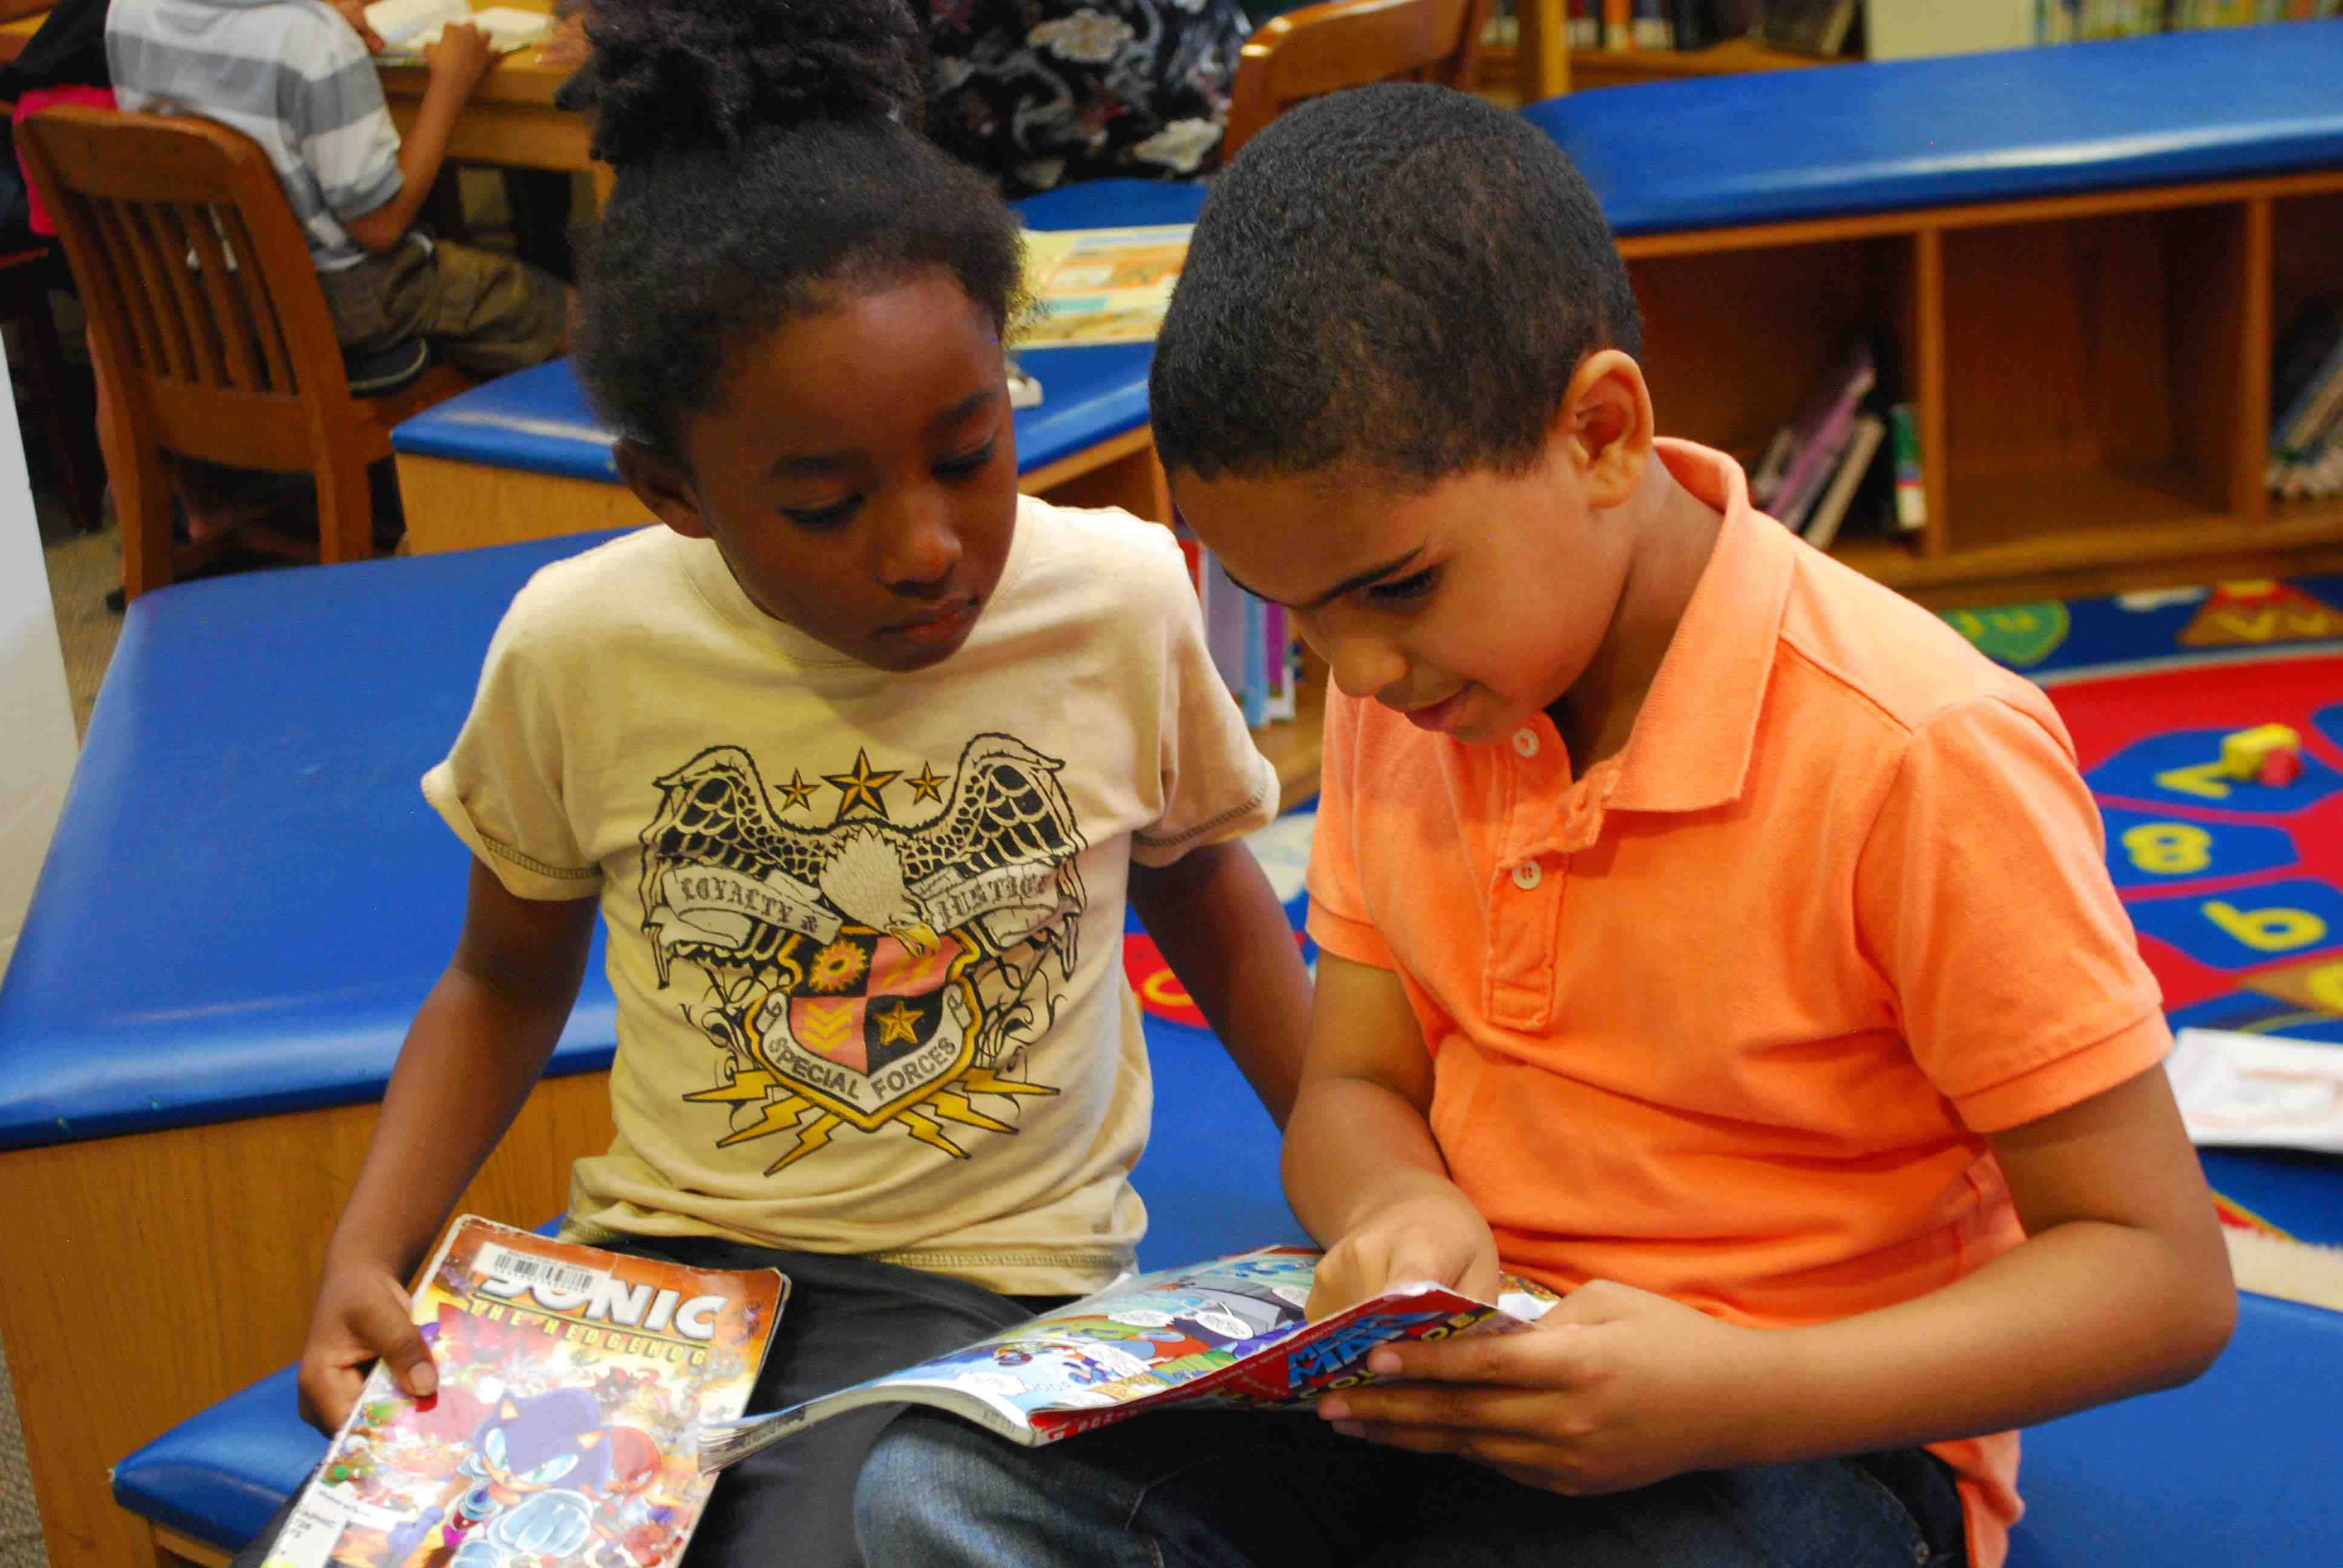 Make the Holidays both Educational & Fun for Your Children